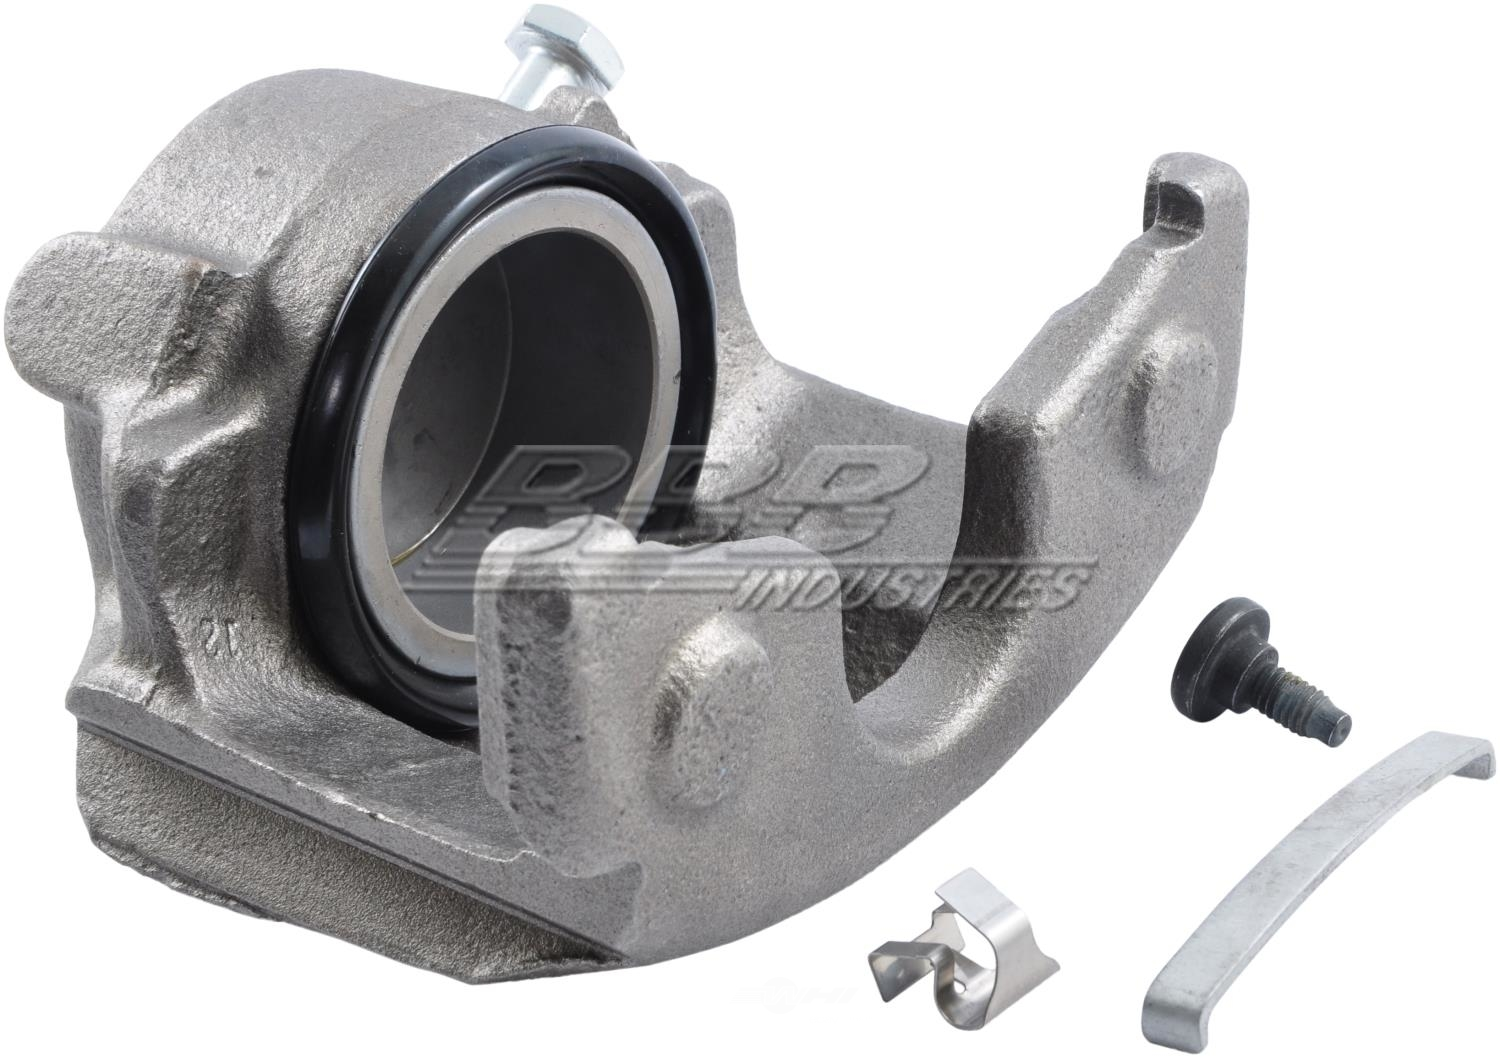 BBB INDUSTRIES - Reman Caliper w/ Installation Hardware - BBA 97-17002B